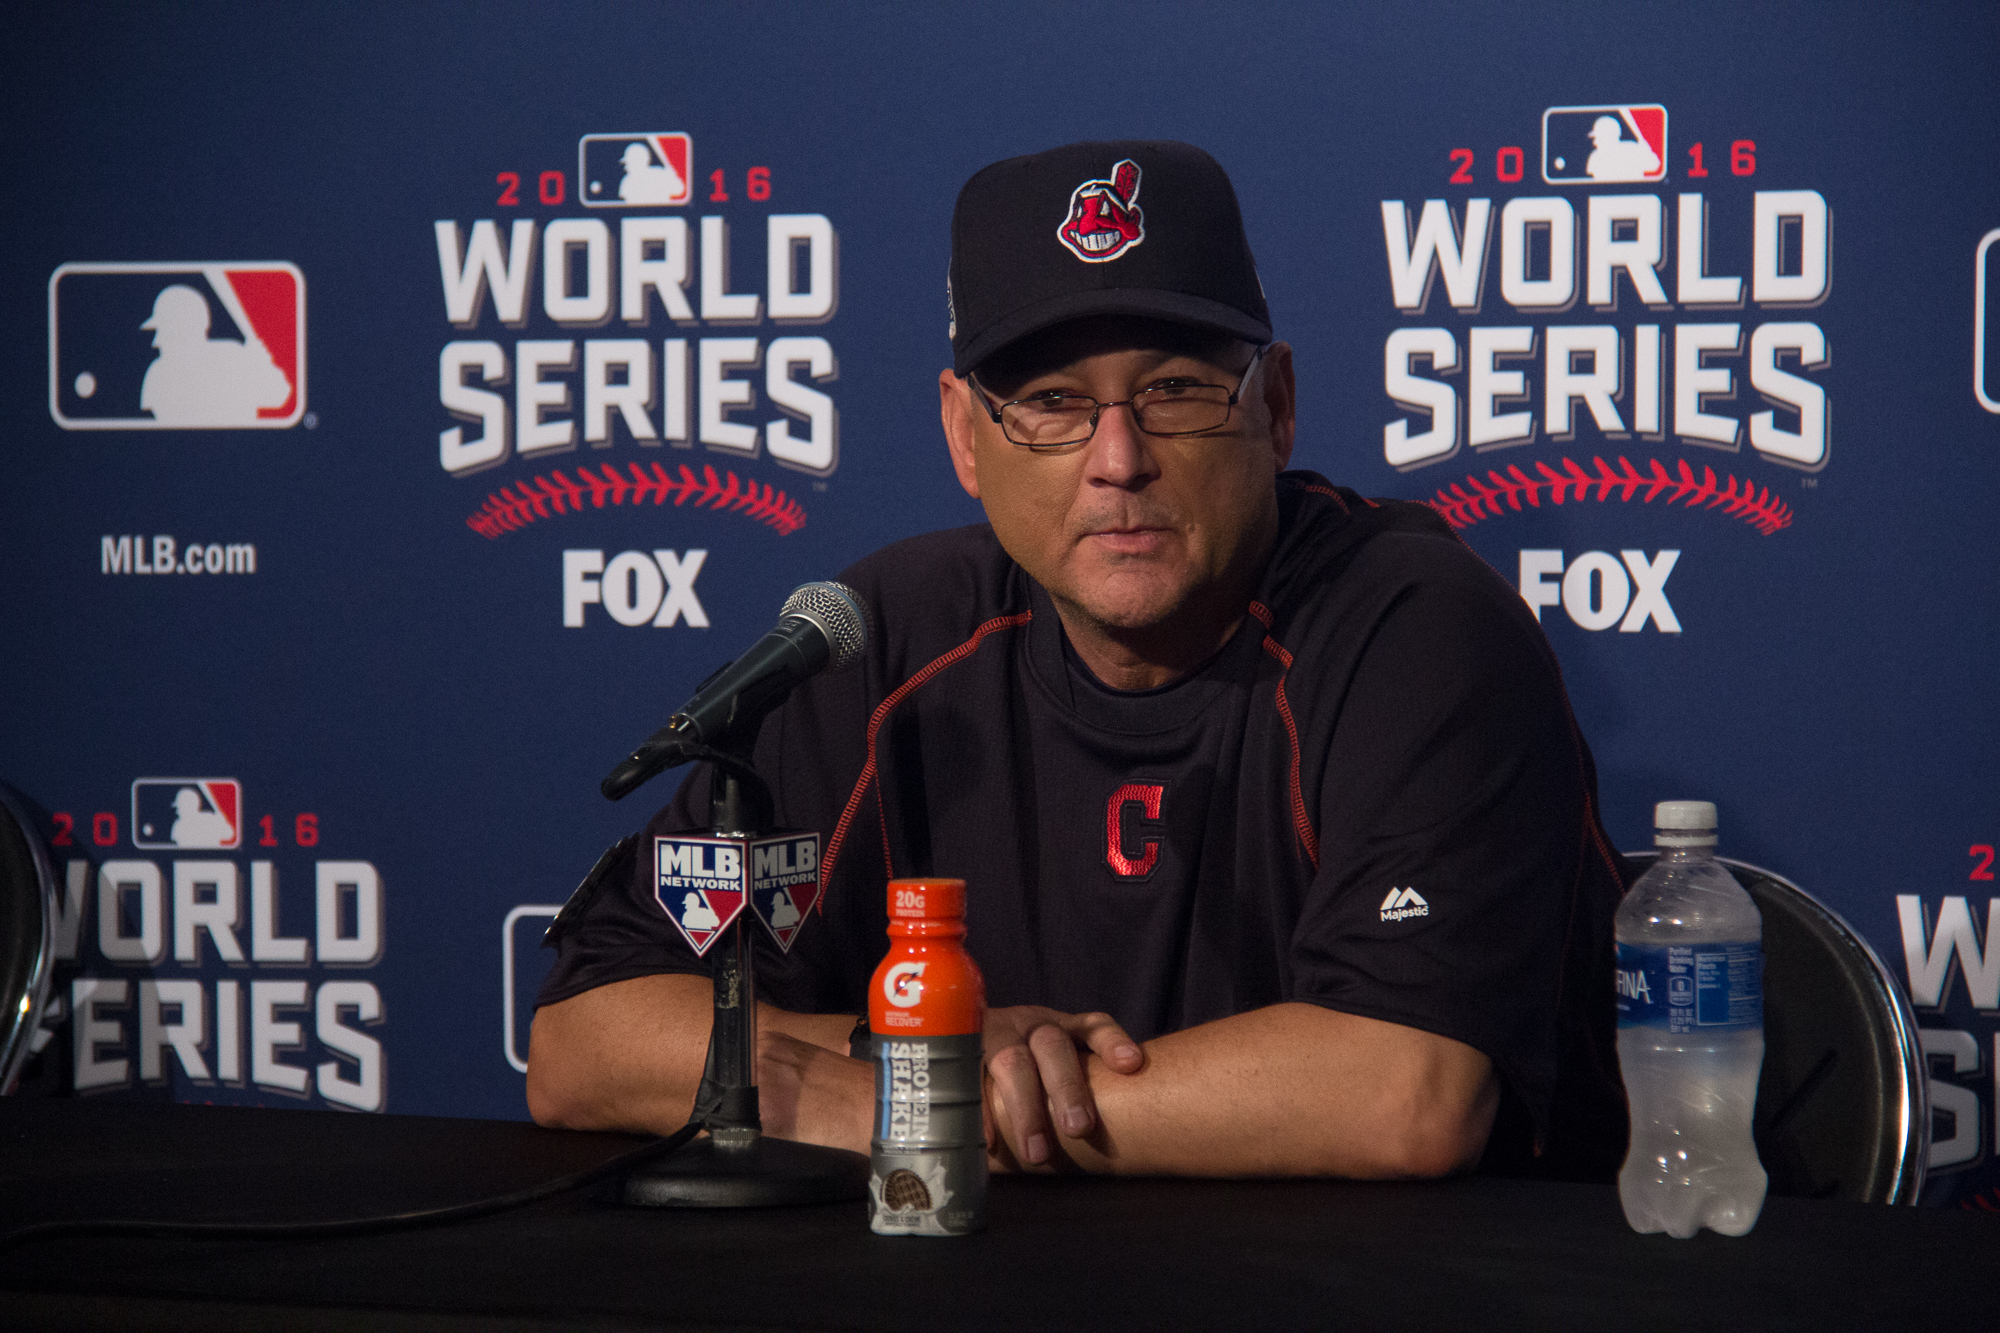 Cleveland manager Terry Francona answers questions from reporters after winning Game 3 of the World Series. Andrew Gill/WBEZ.